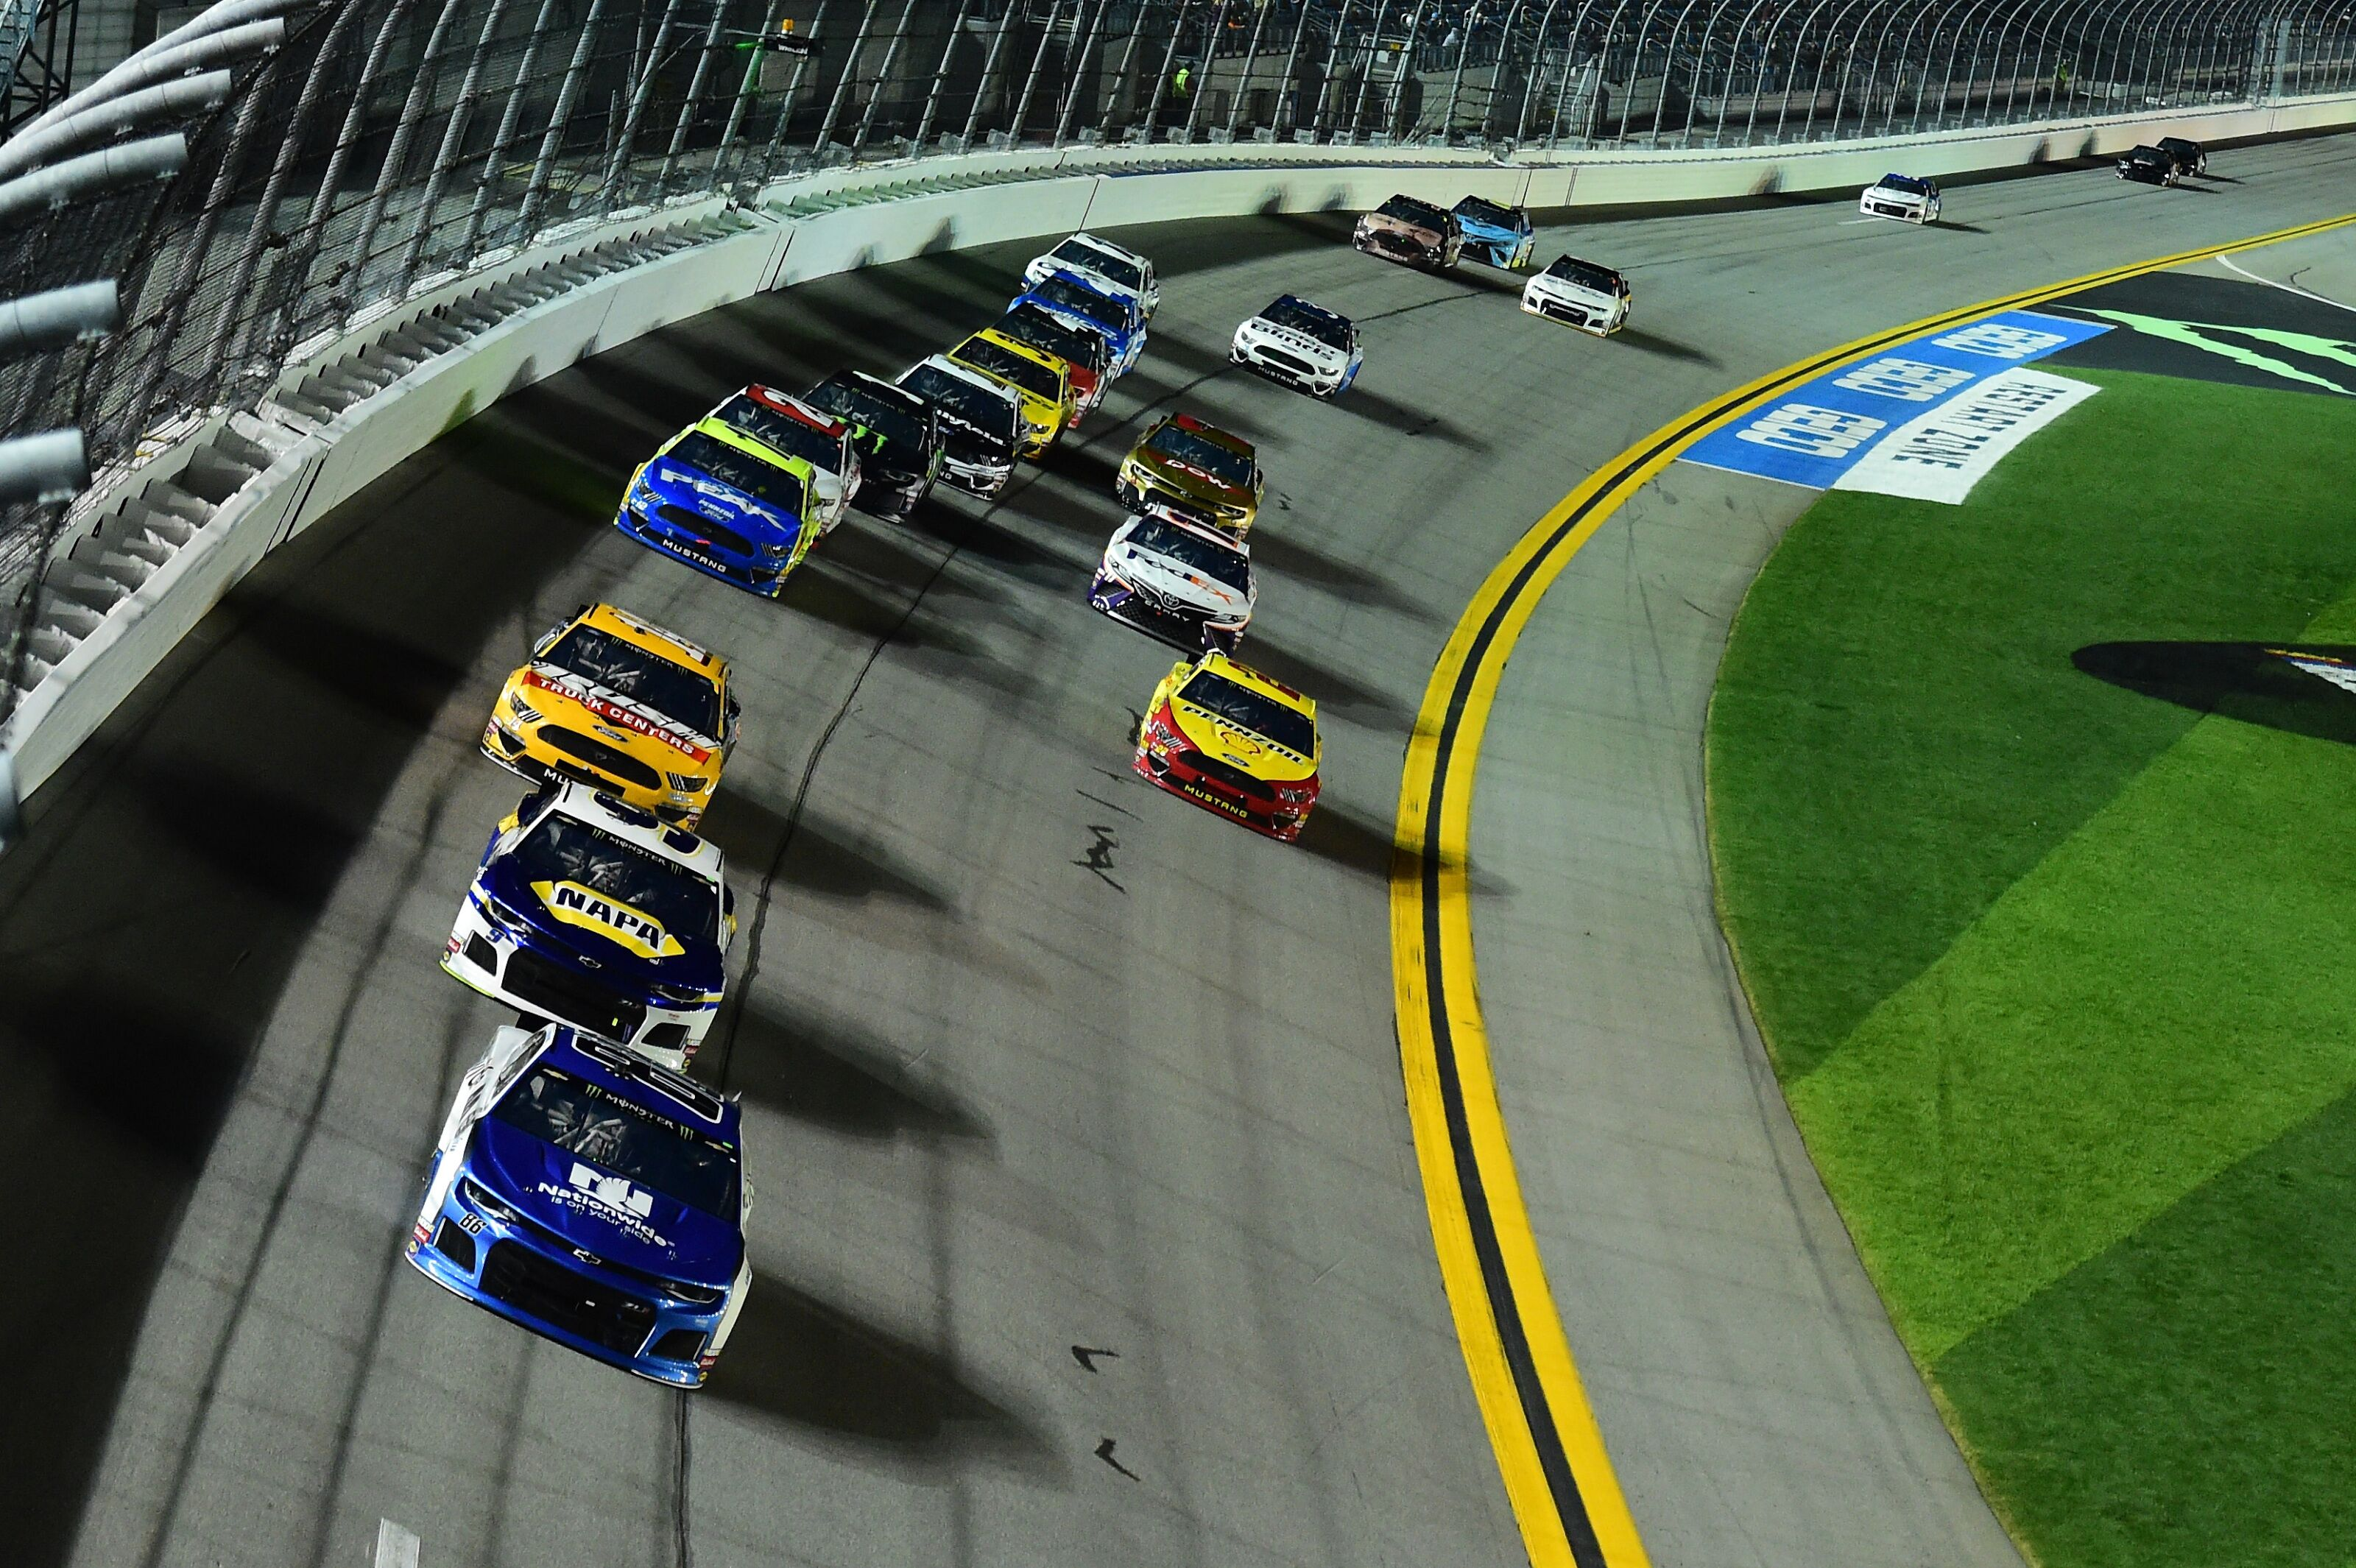 NASCAR: 3 drivers will be going home from 2020 Daytona 500 – Beyond the Flag